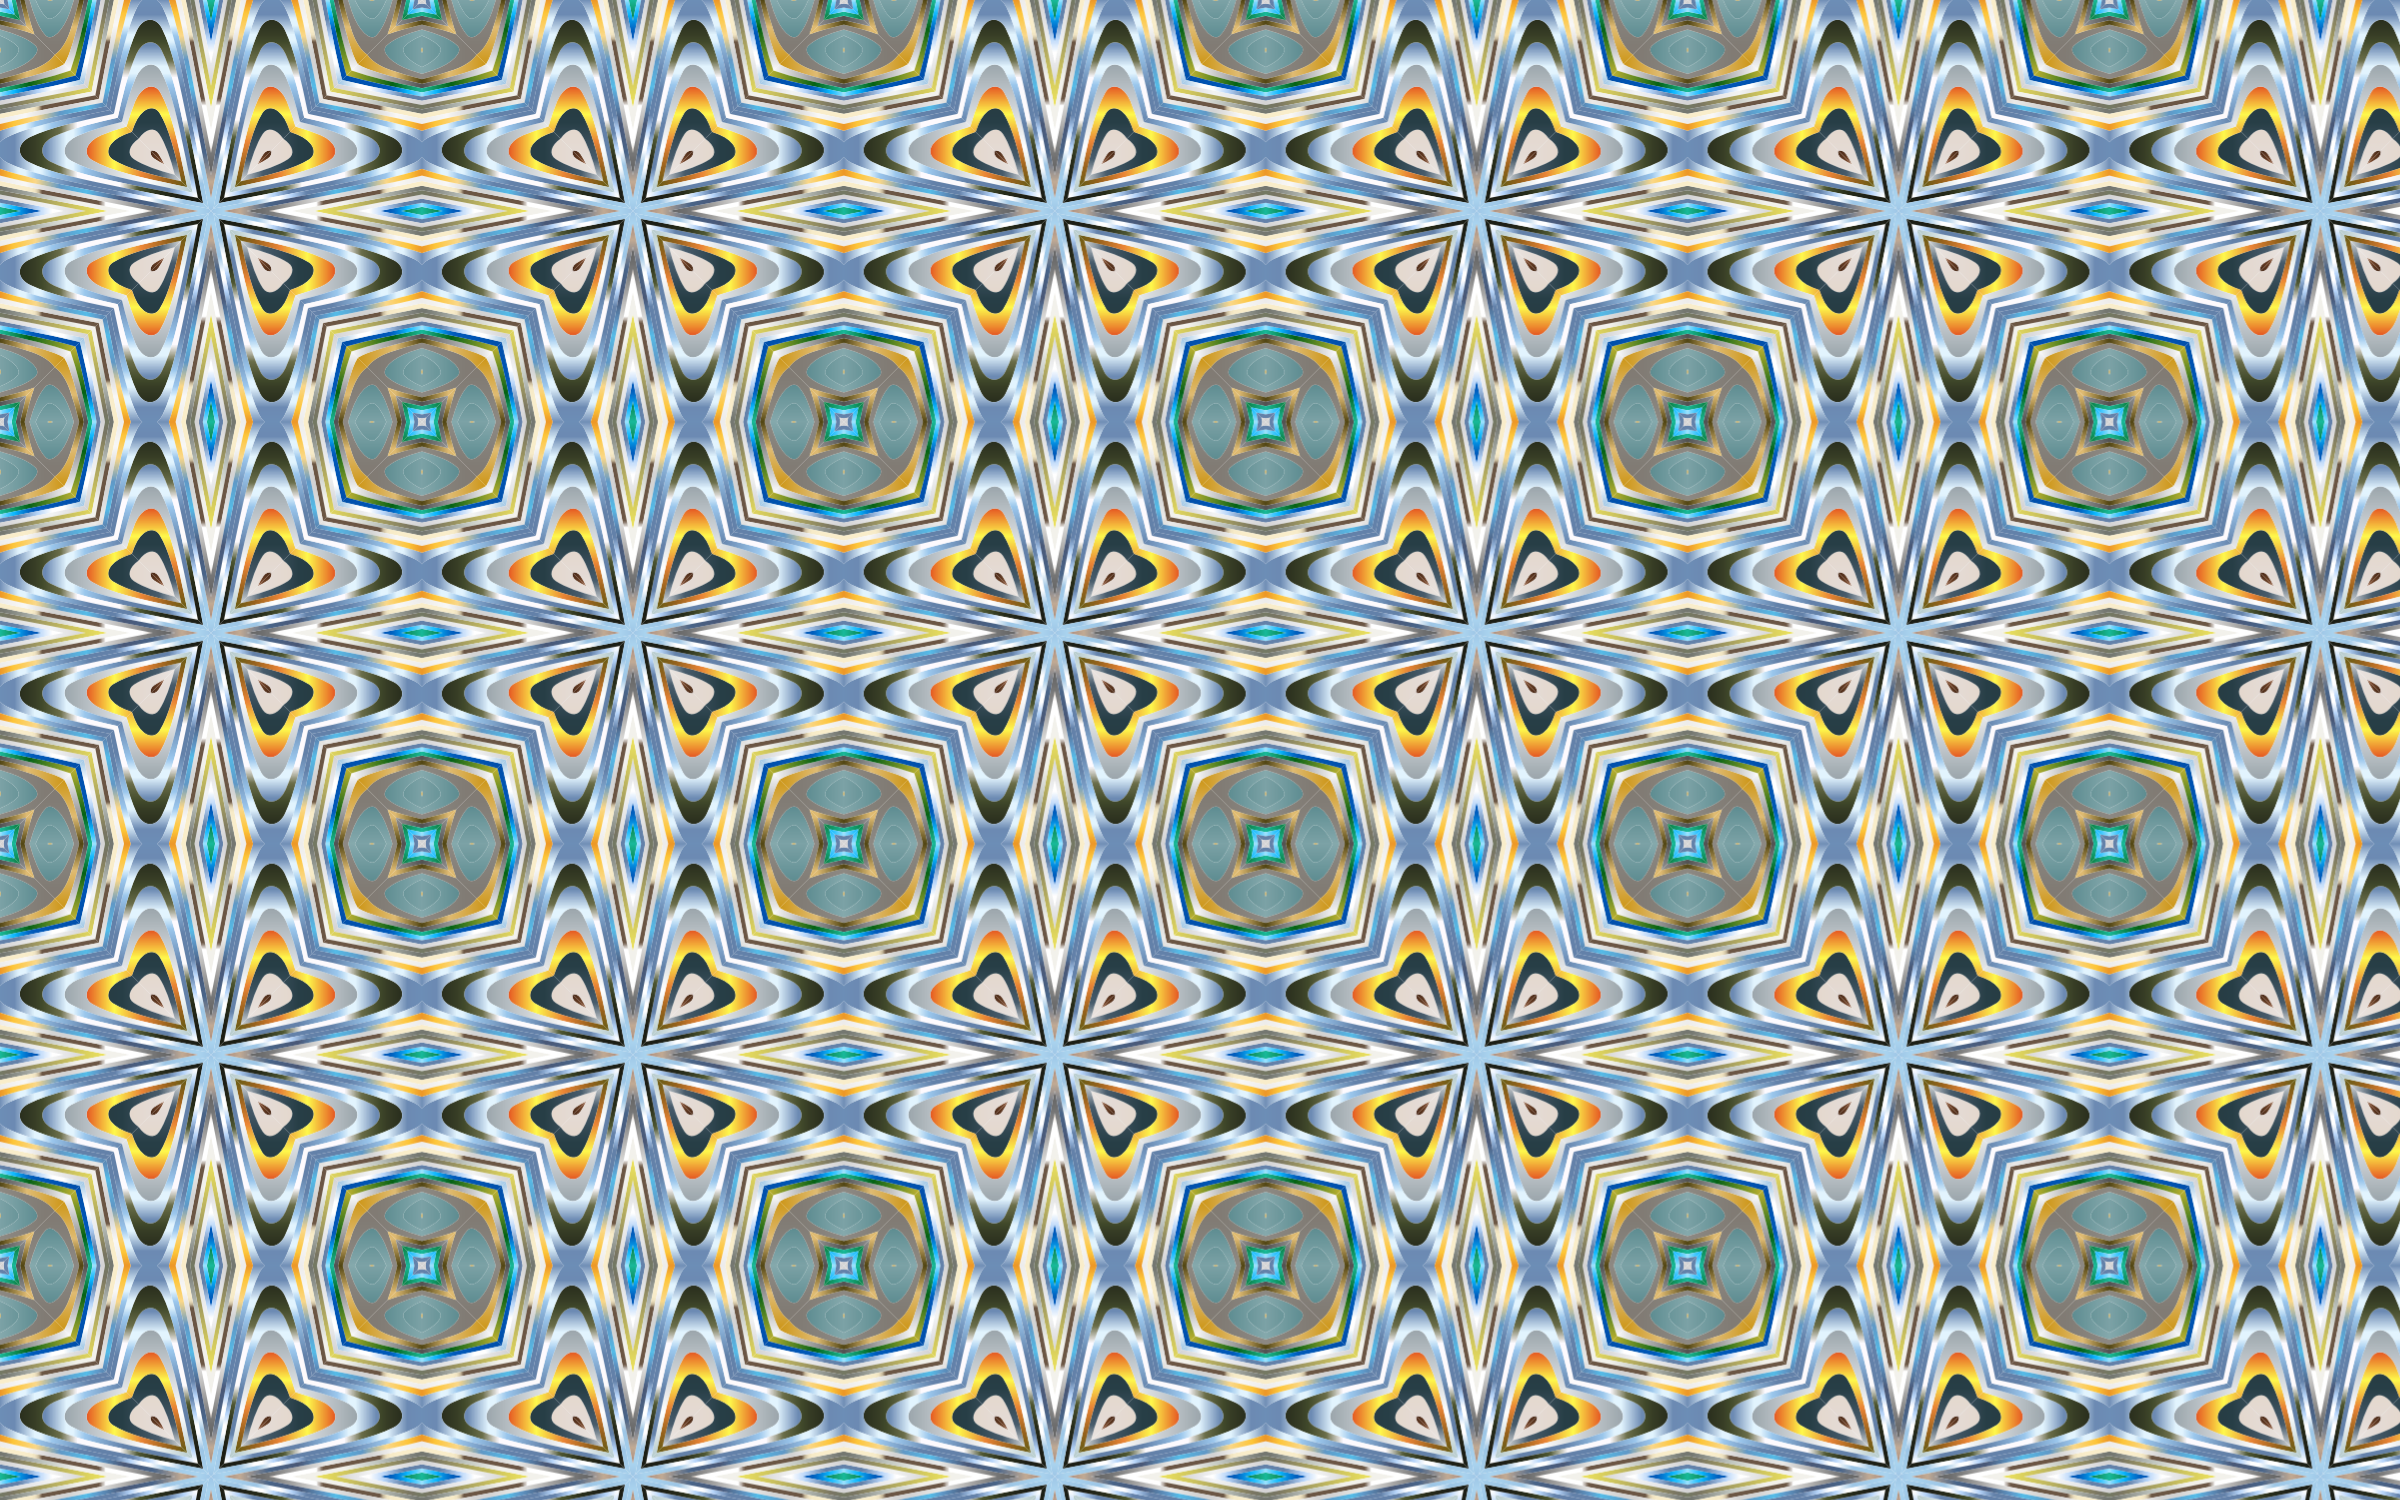 Seamless Pattern DailySketch58 10 by GDJ